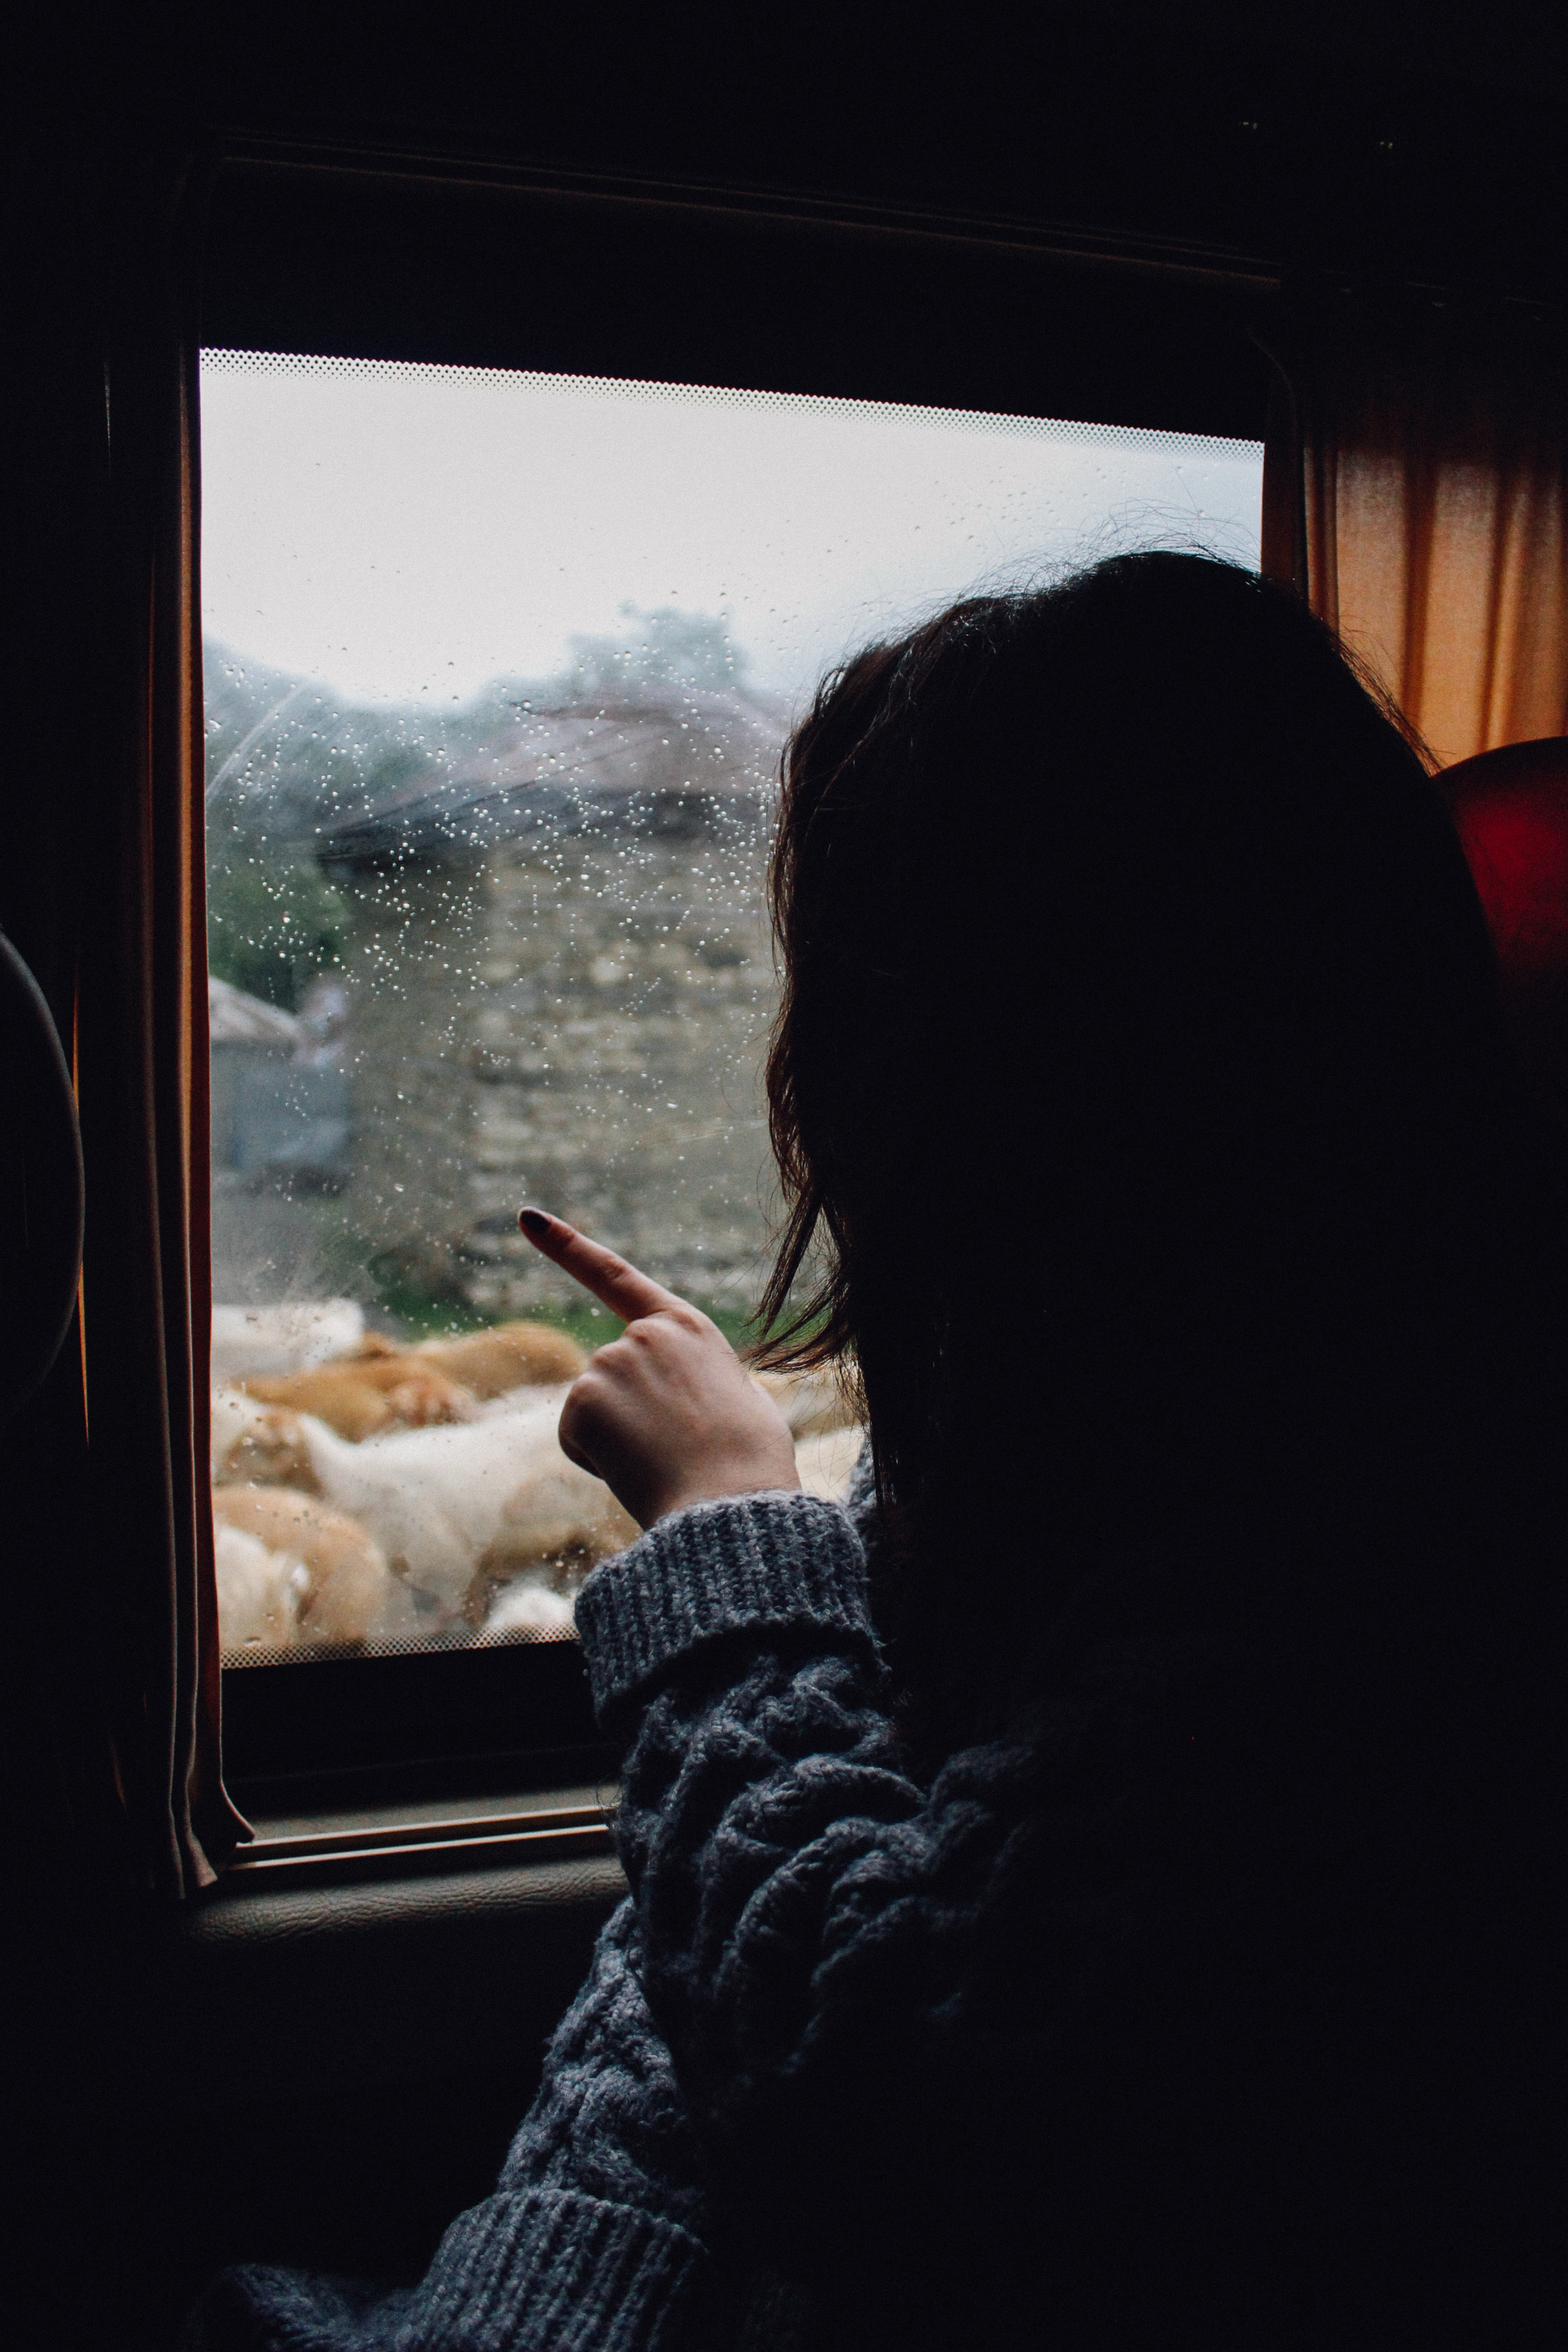 A woman in a train pointing at the window